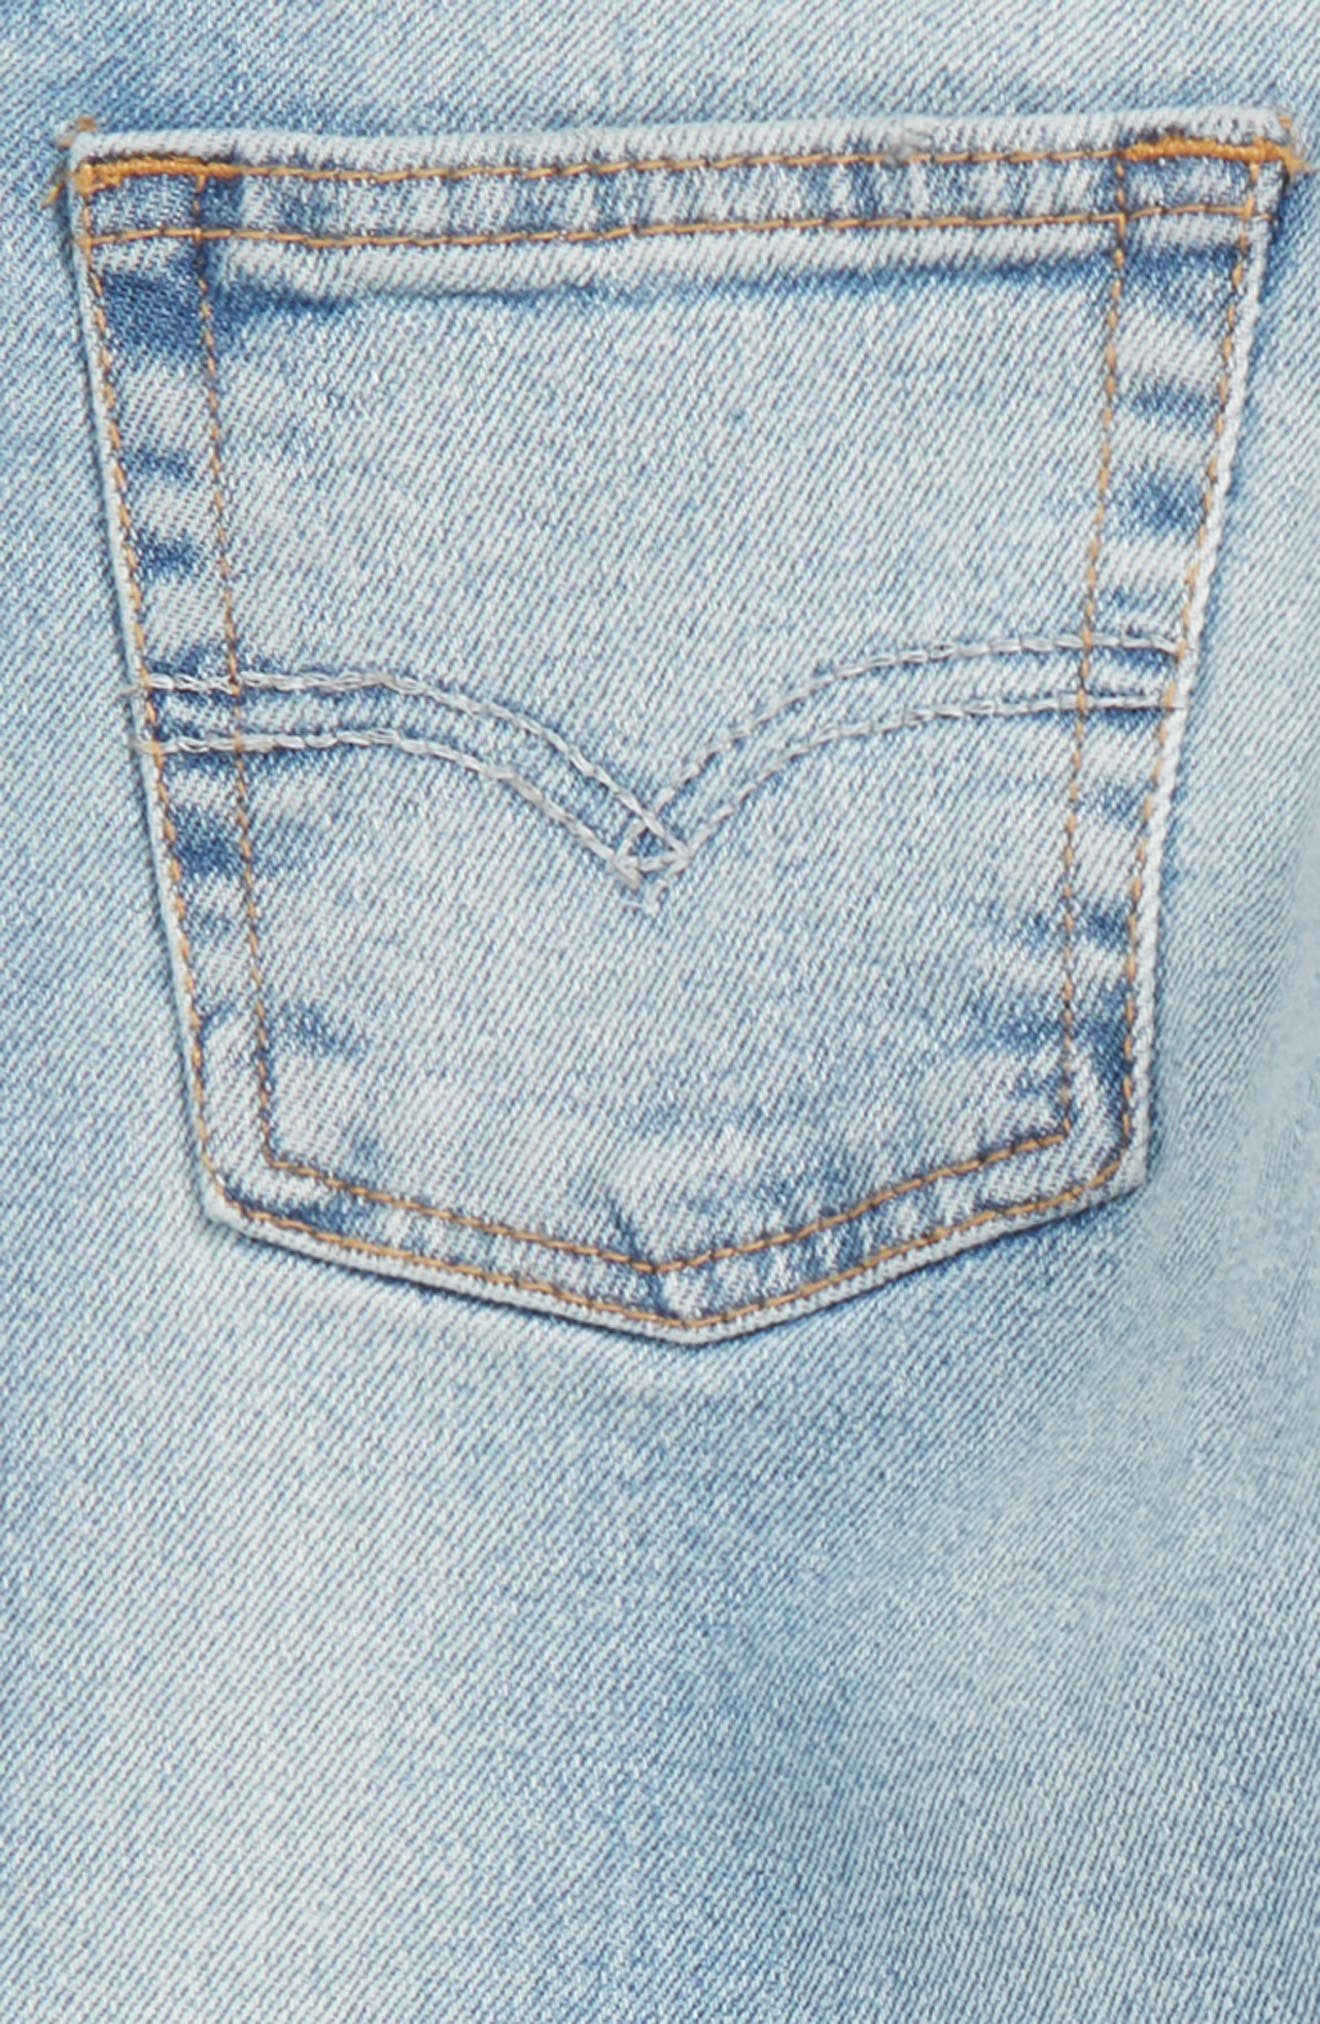 511<sup>™</sup> Made to Play Jeans,                             Alternate thumbnail 3, color,                             422